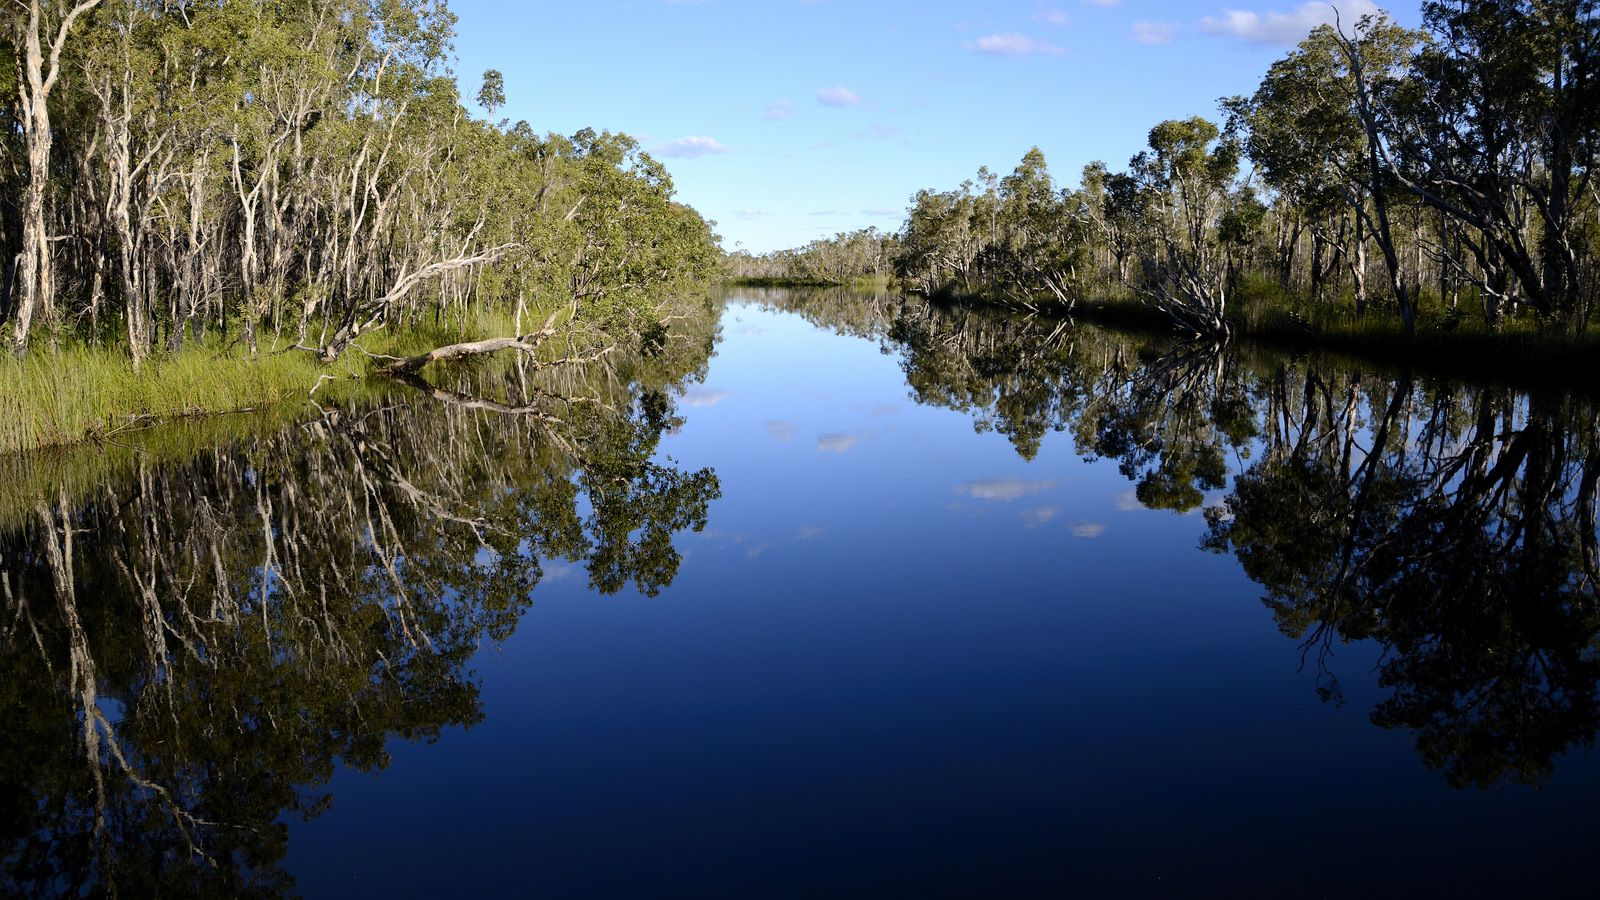 Serene view of Noosa Everglades Wilderness on the Sunshine Coast